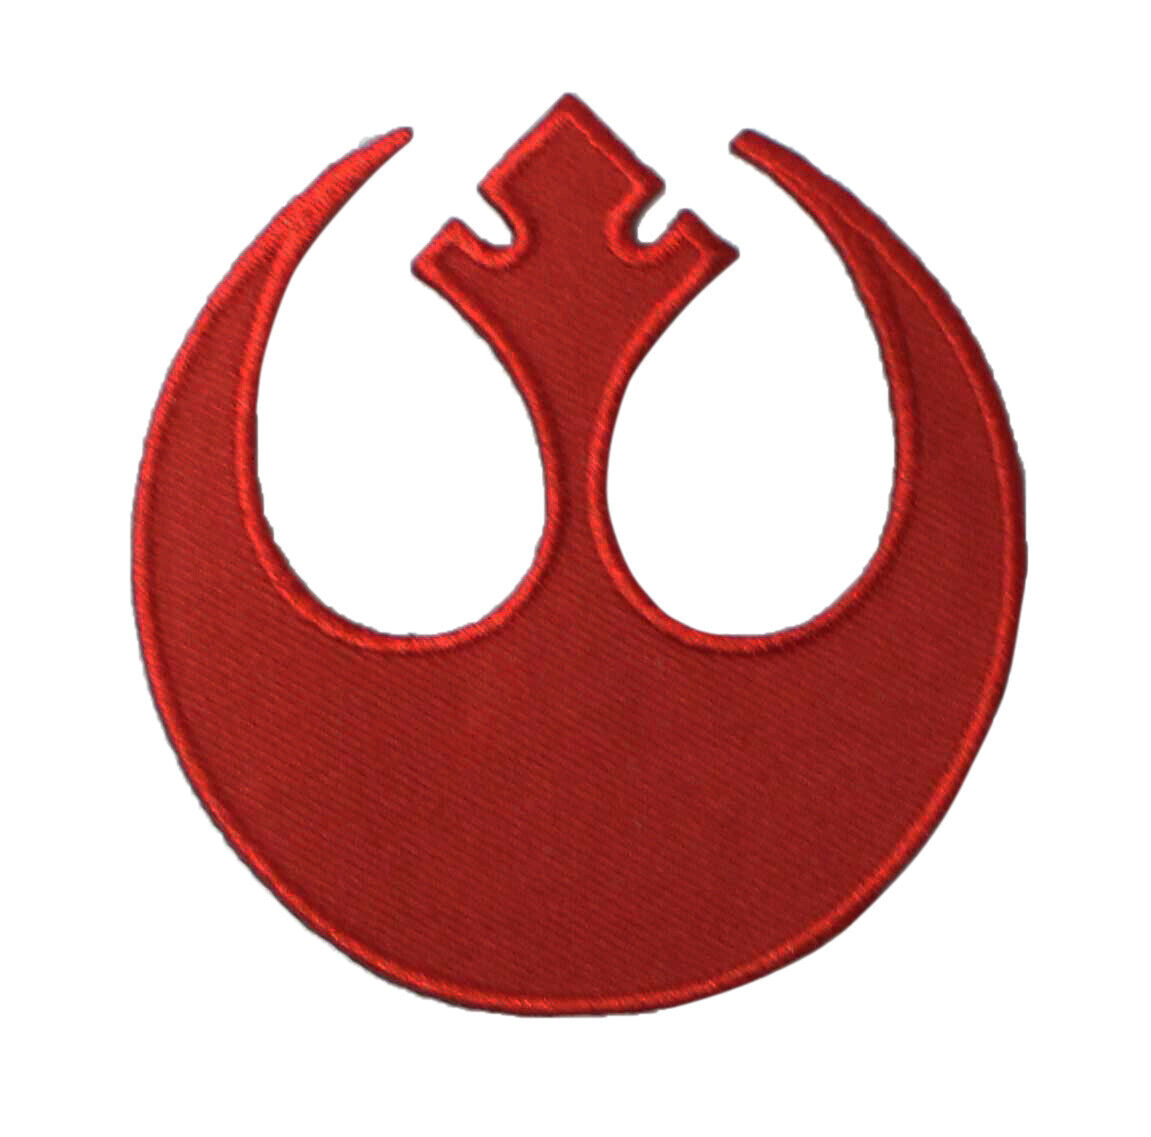 Rebel Alliance Galactic Empire Symbol Star Wars Embroidered Iron-On Sew patch